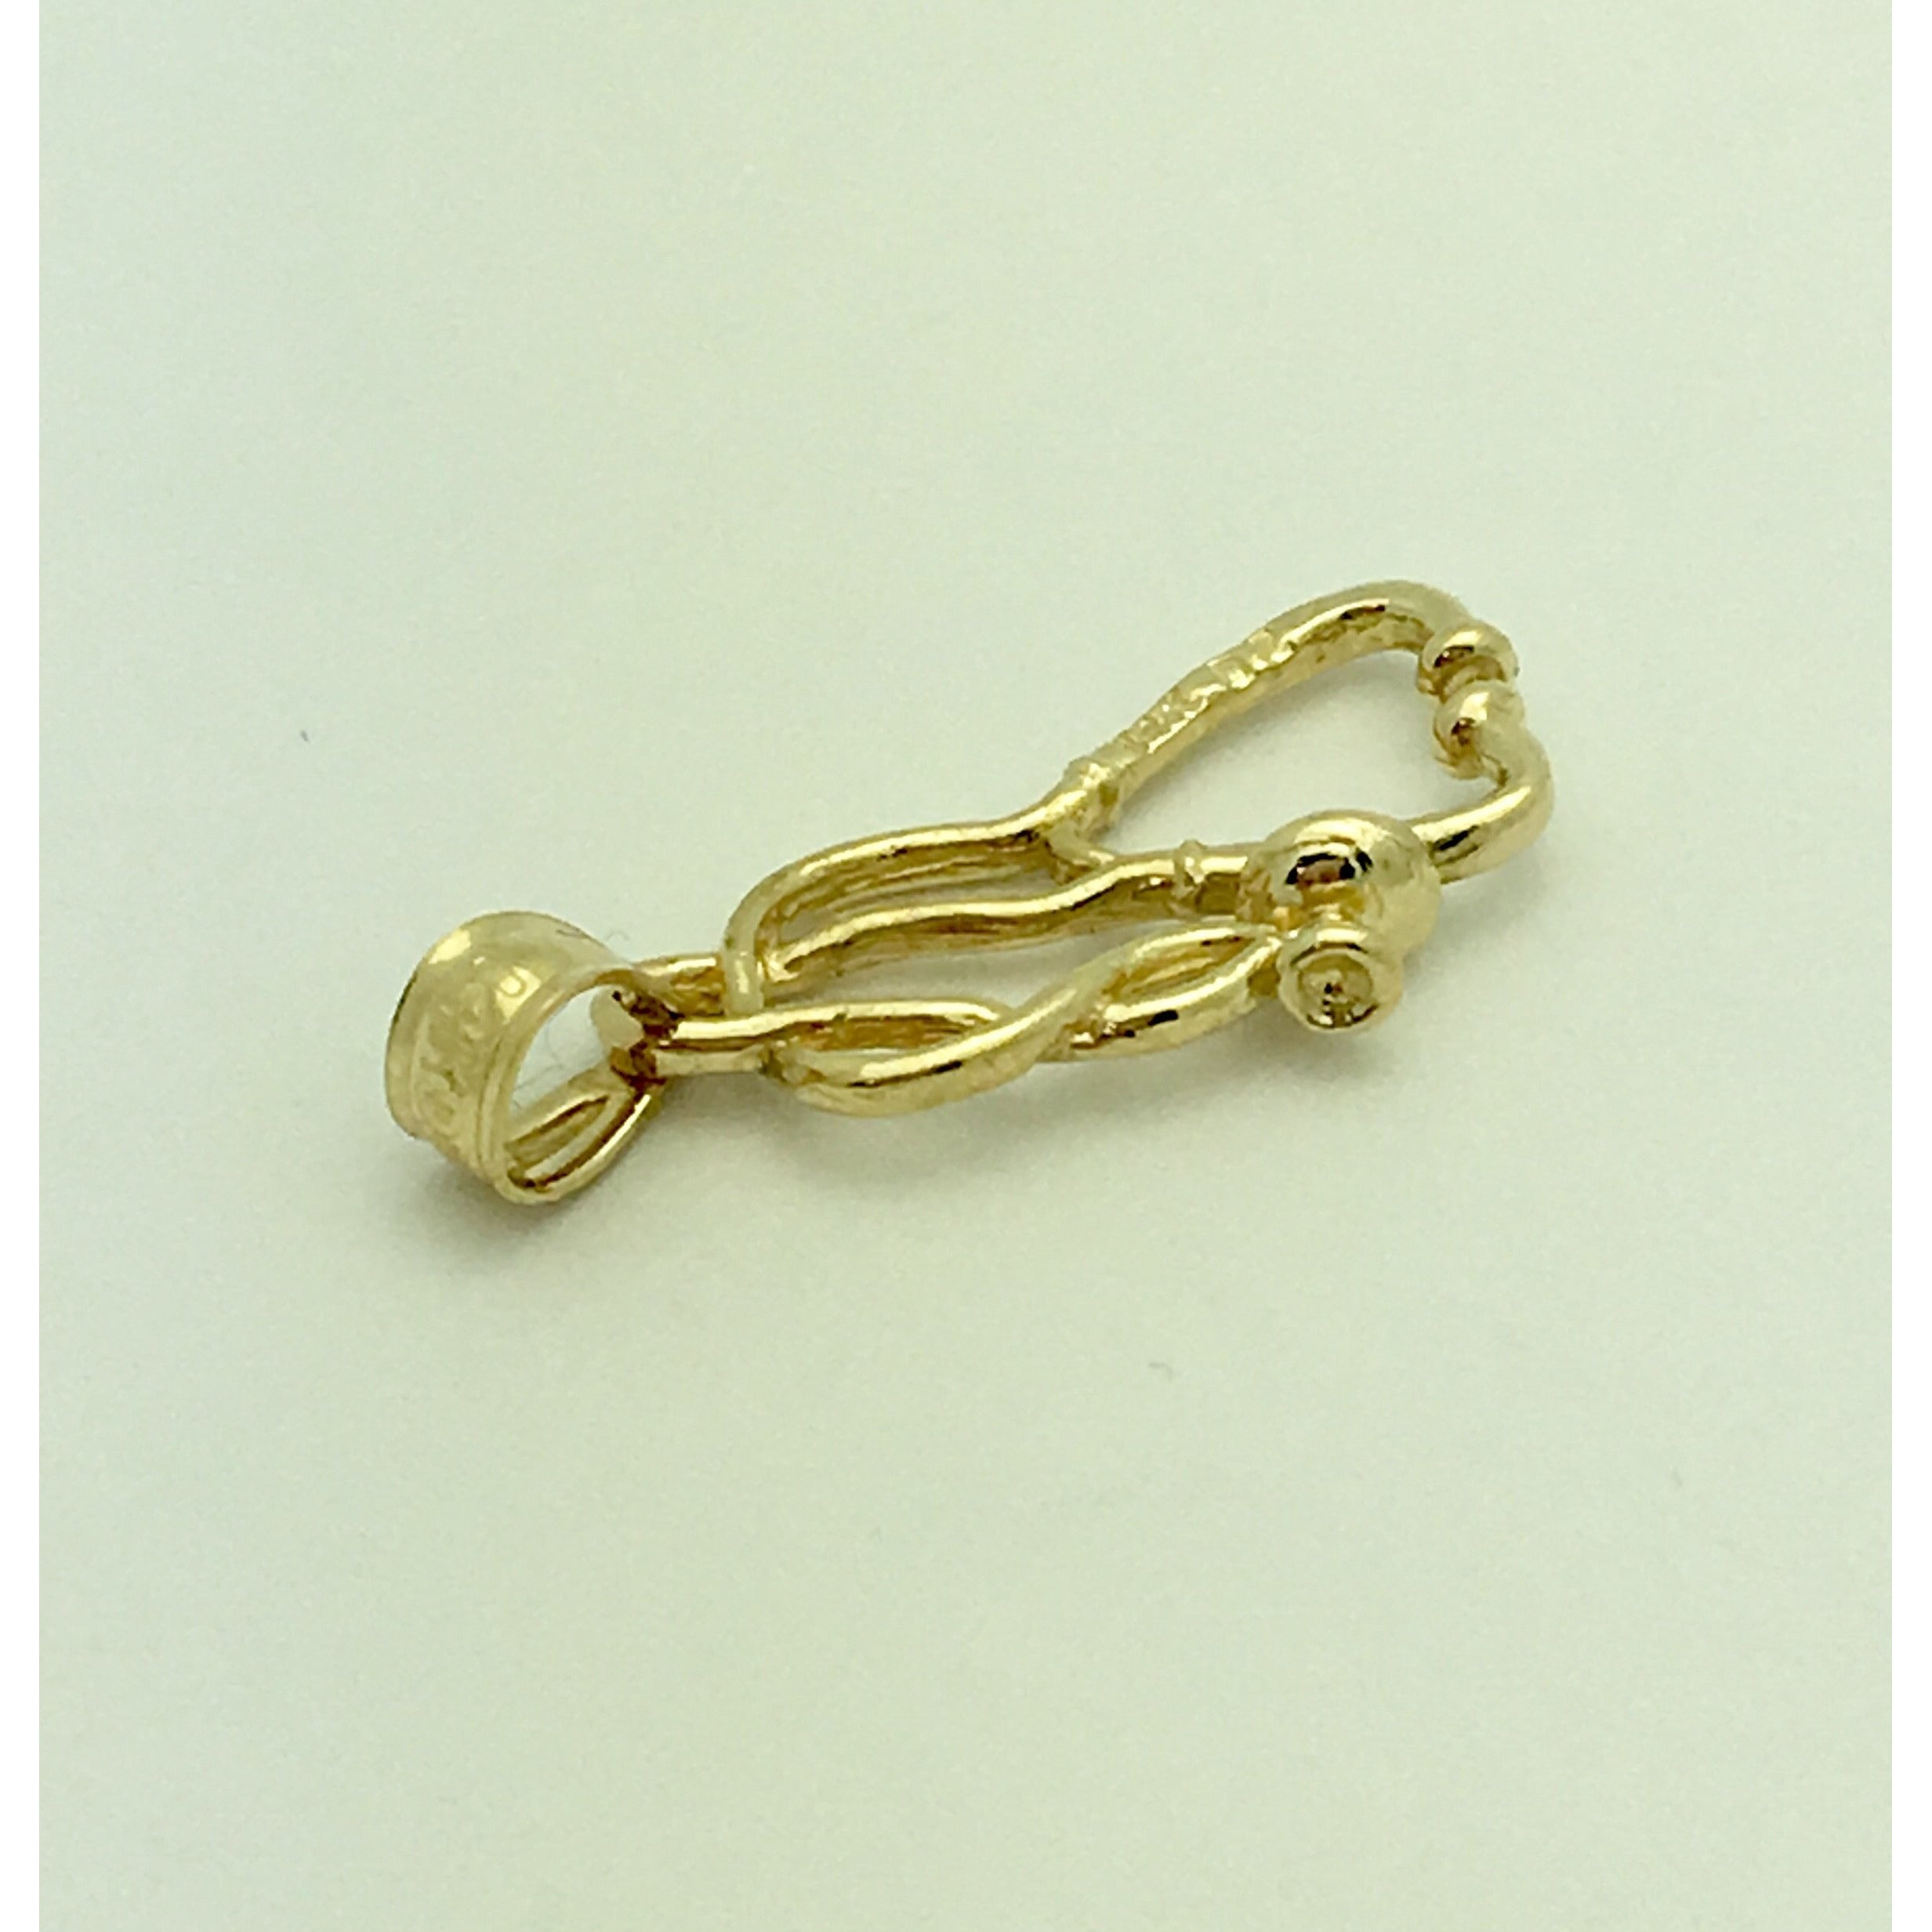 CHARJ014 14K Yellow Gold Stethoscope